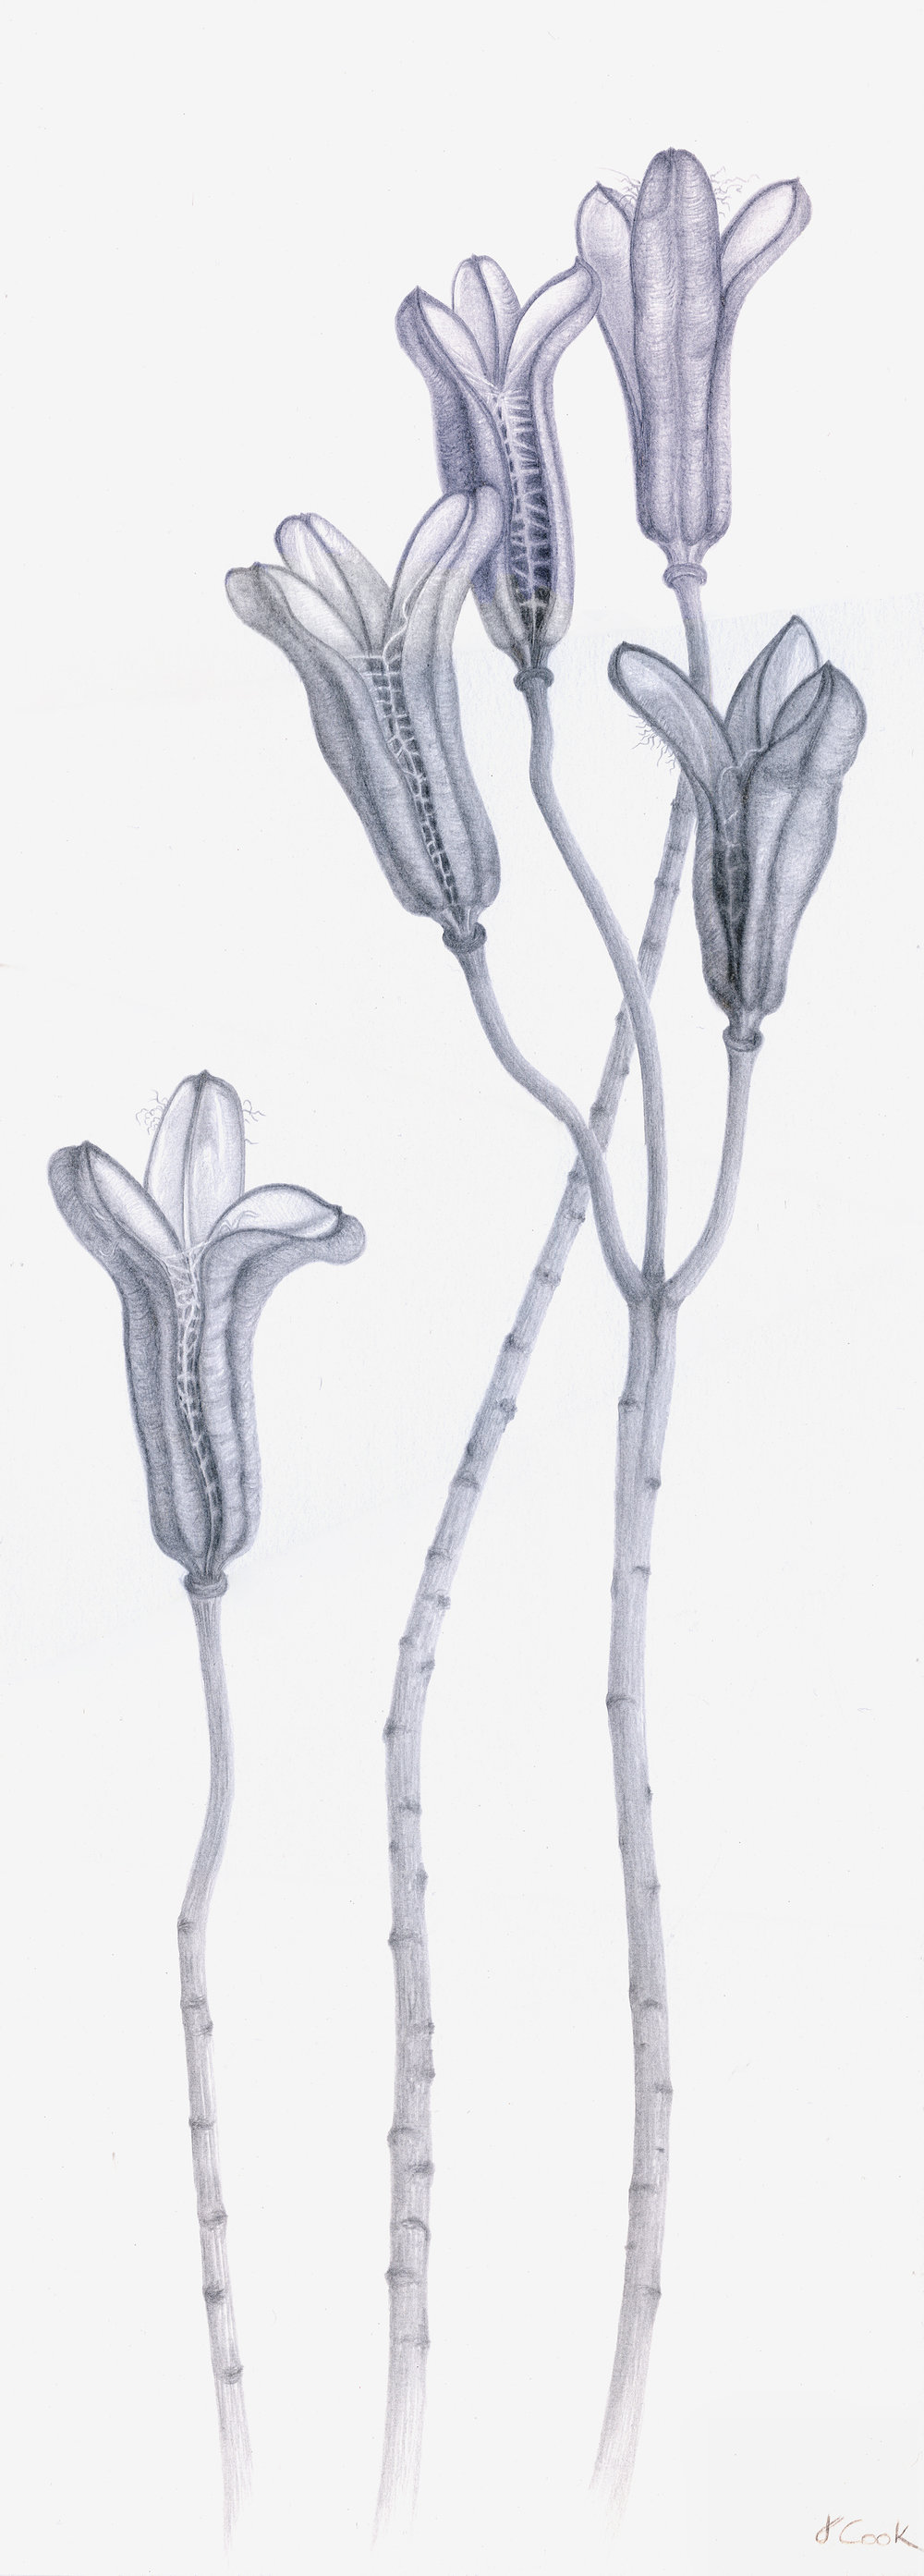 Enduring Elegance, (regale lily seed pods), silverpoint, Jeannine Cook artist